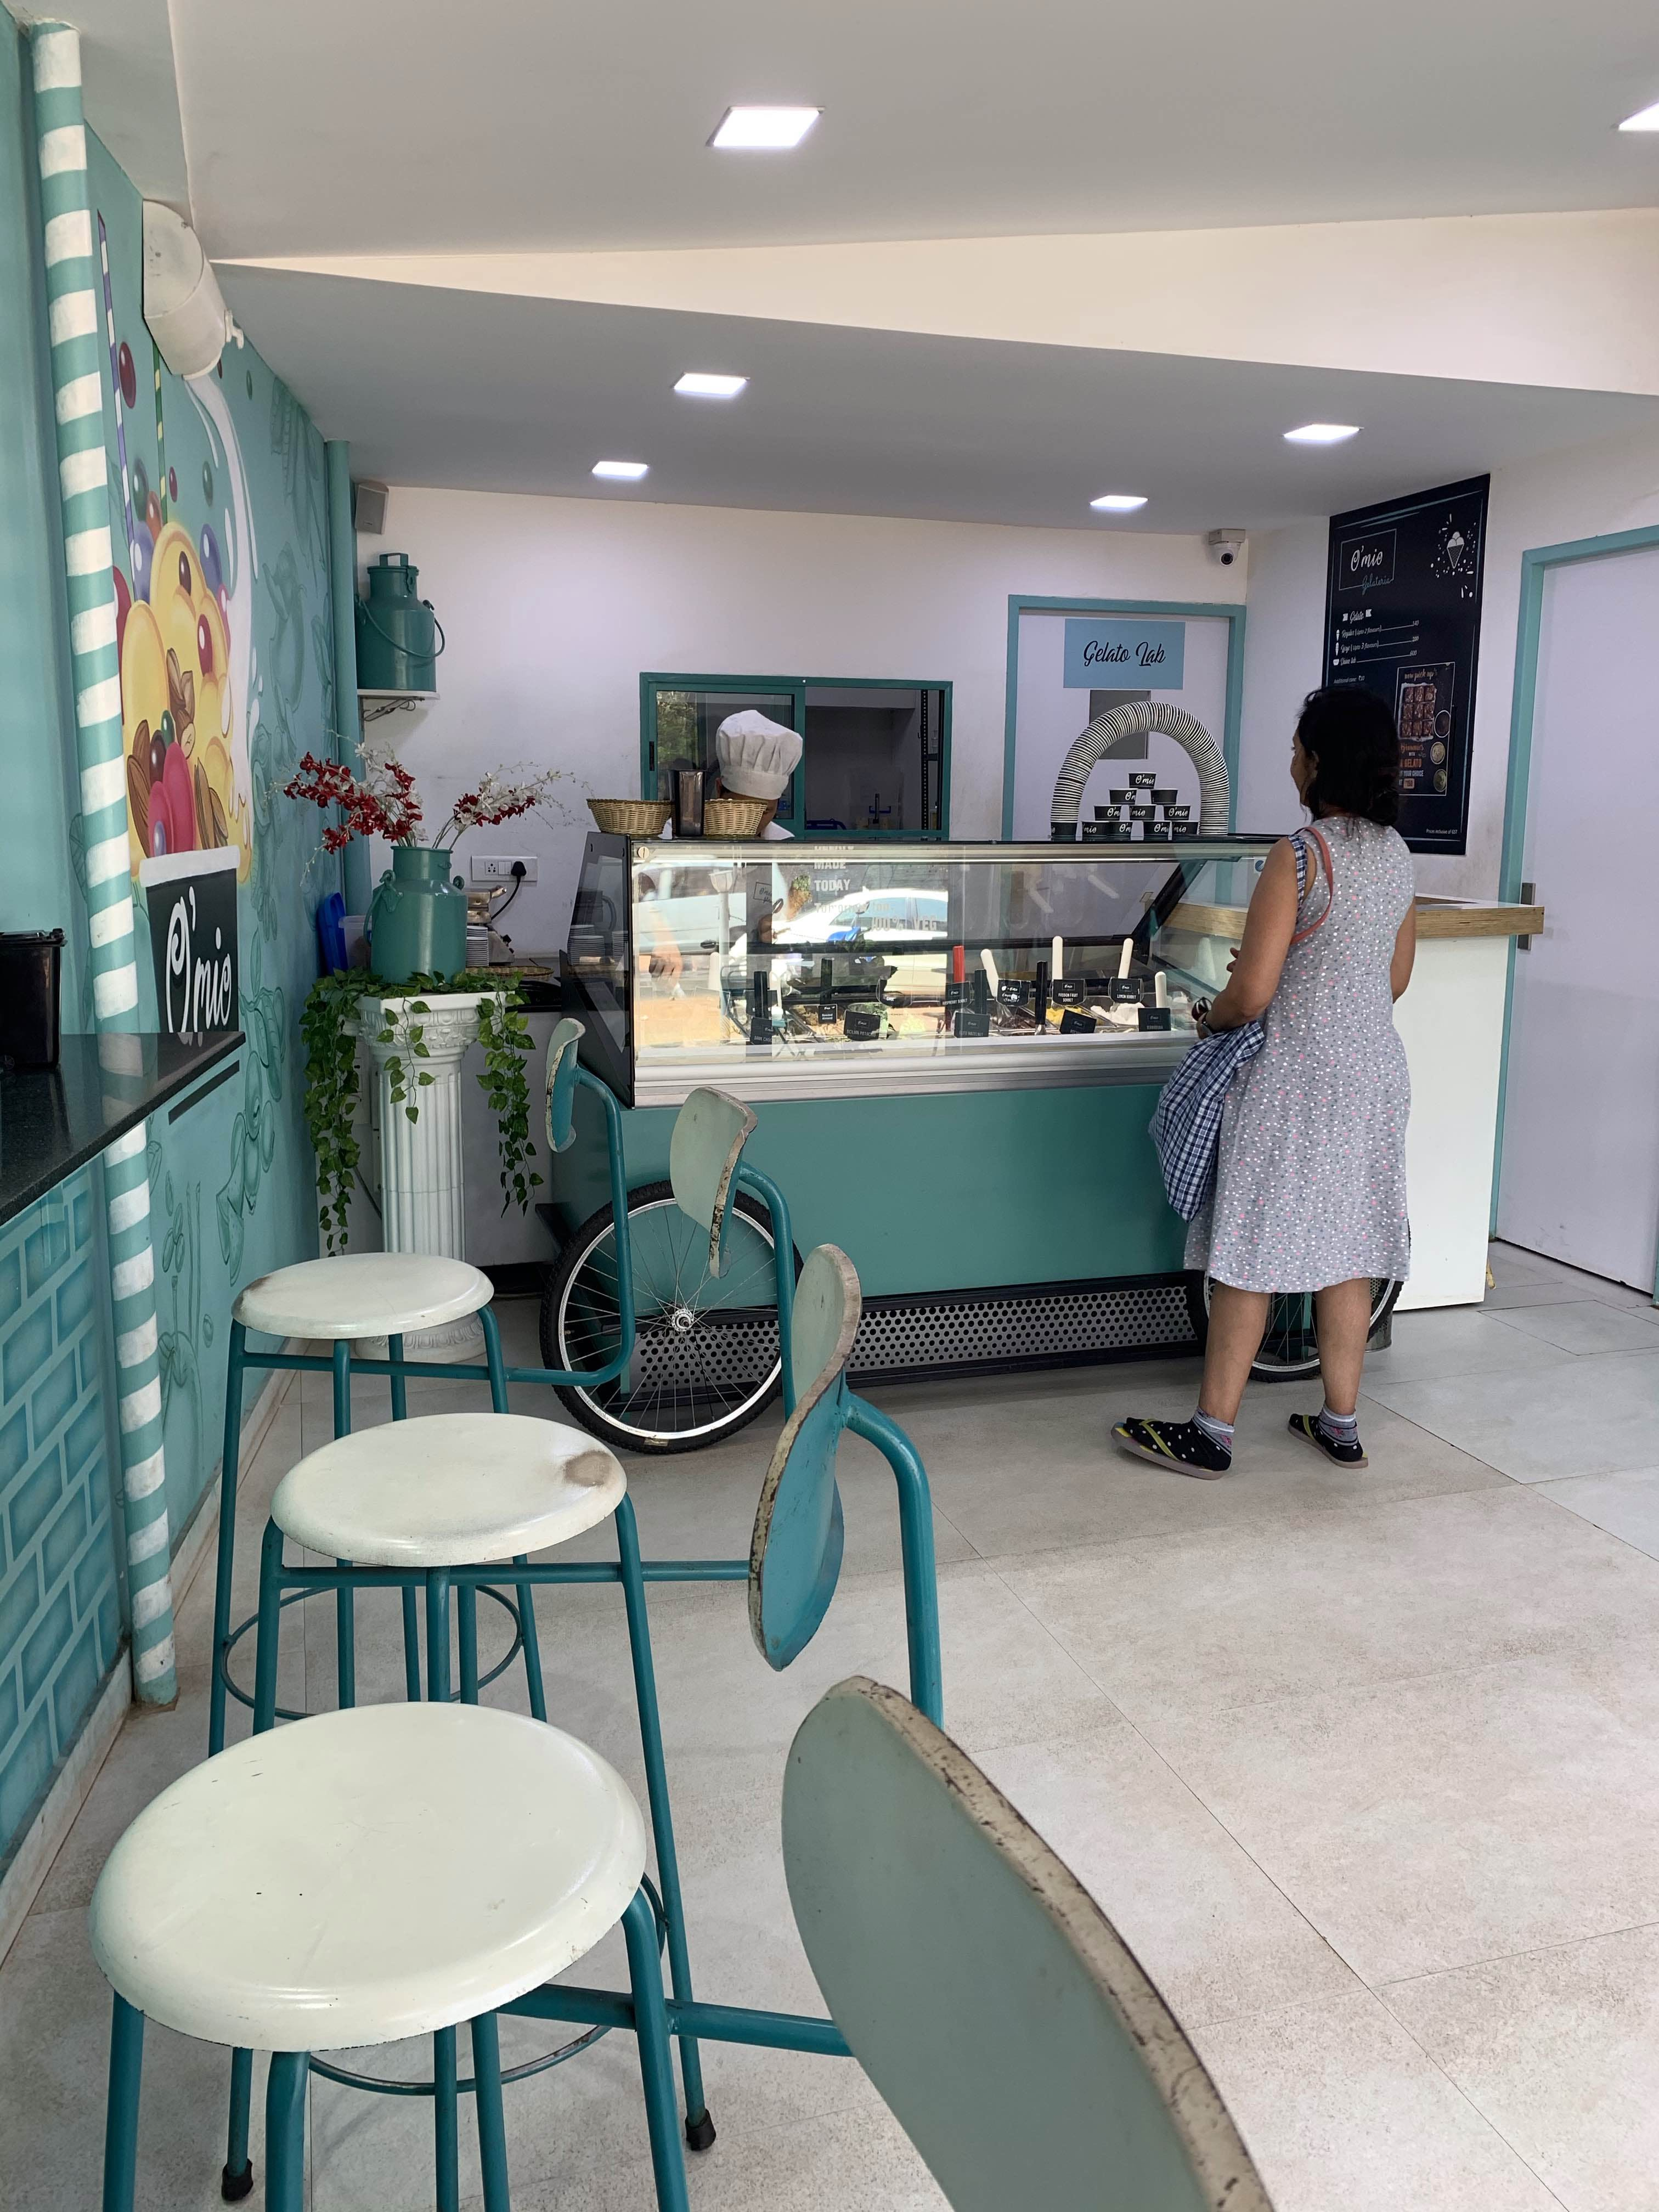 Amazing And Delicious Gelato In This Cute Shop